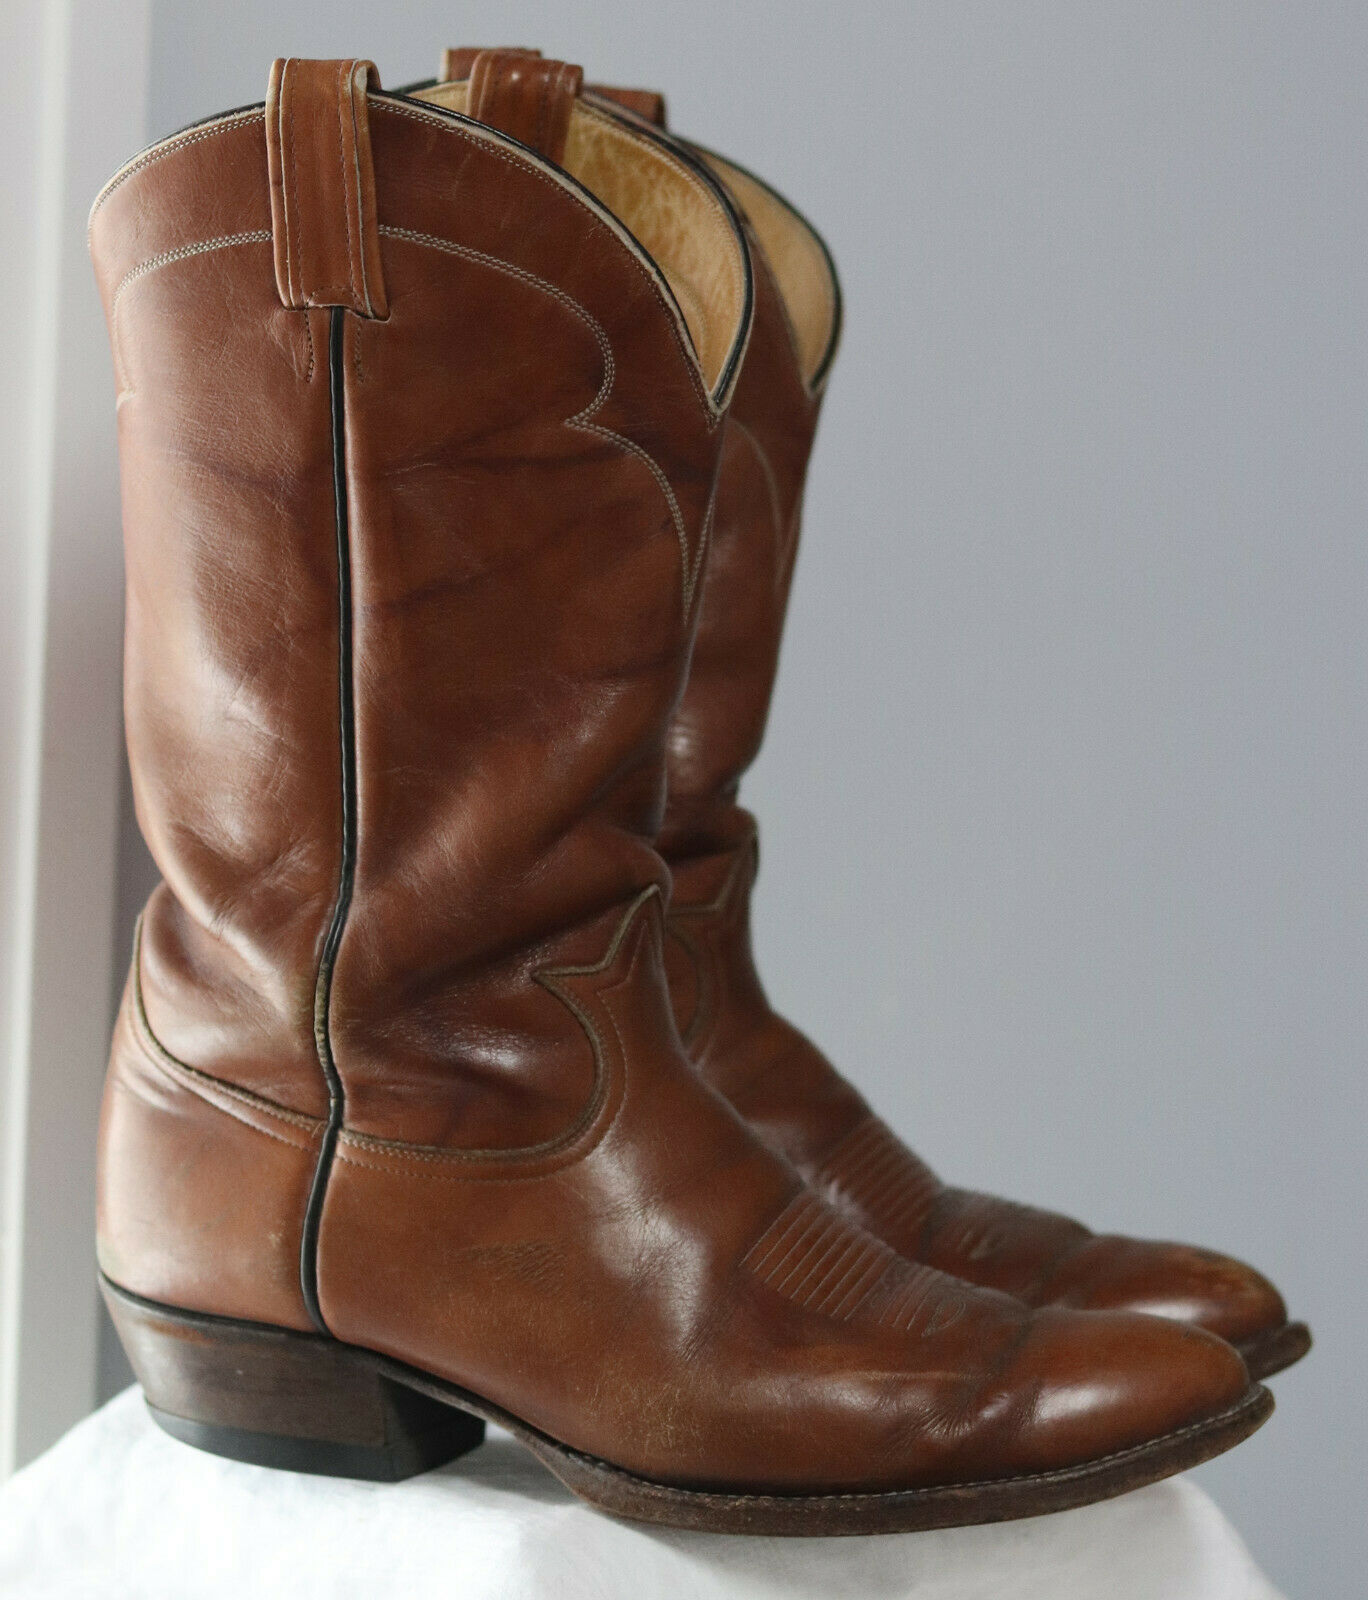 Tony Lama Cowboy boots size 11.5D Country Western